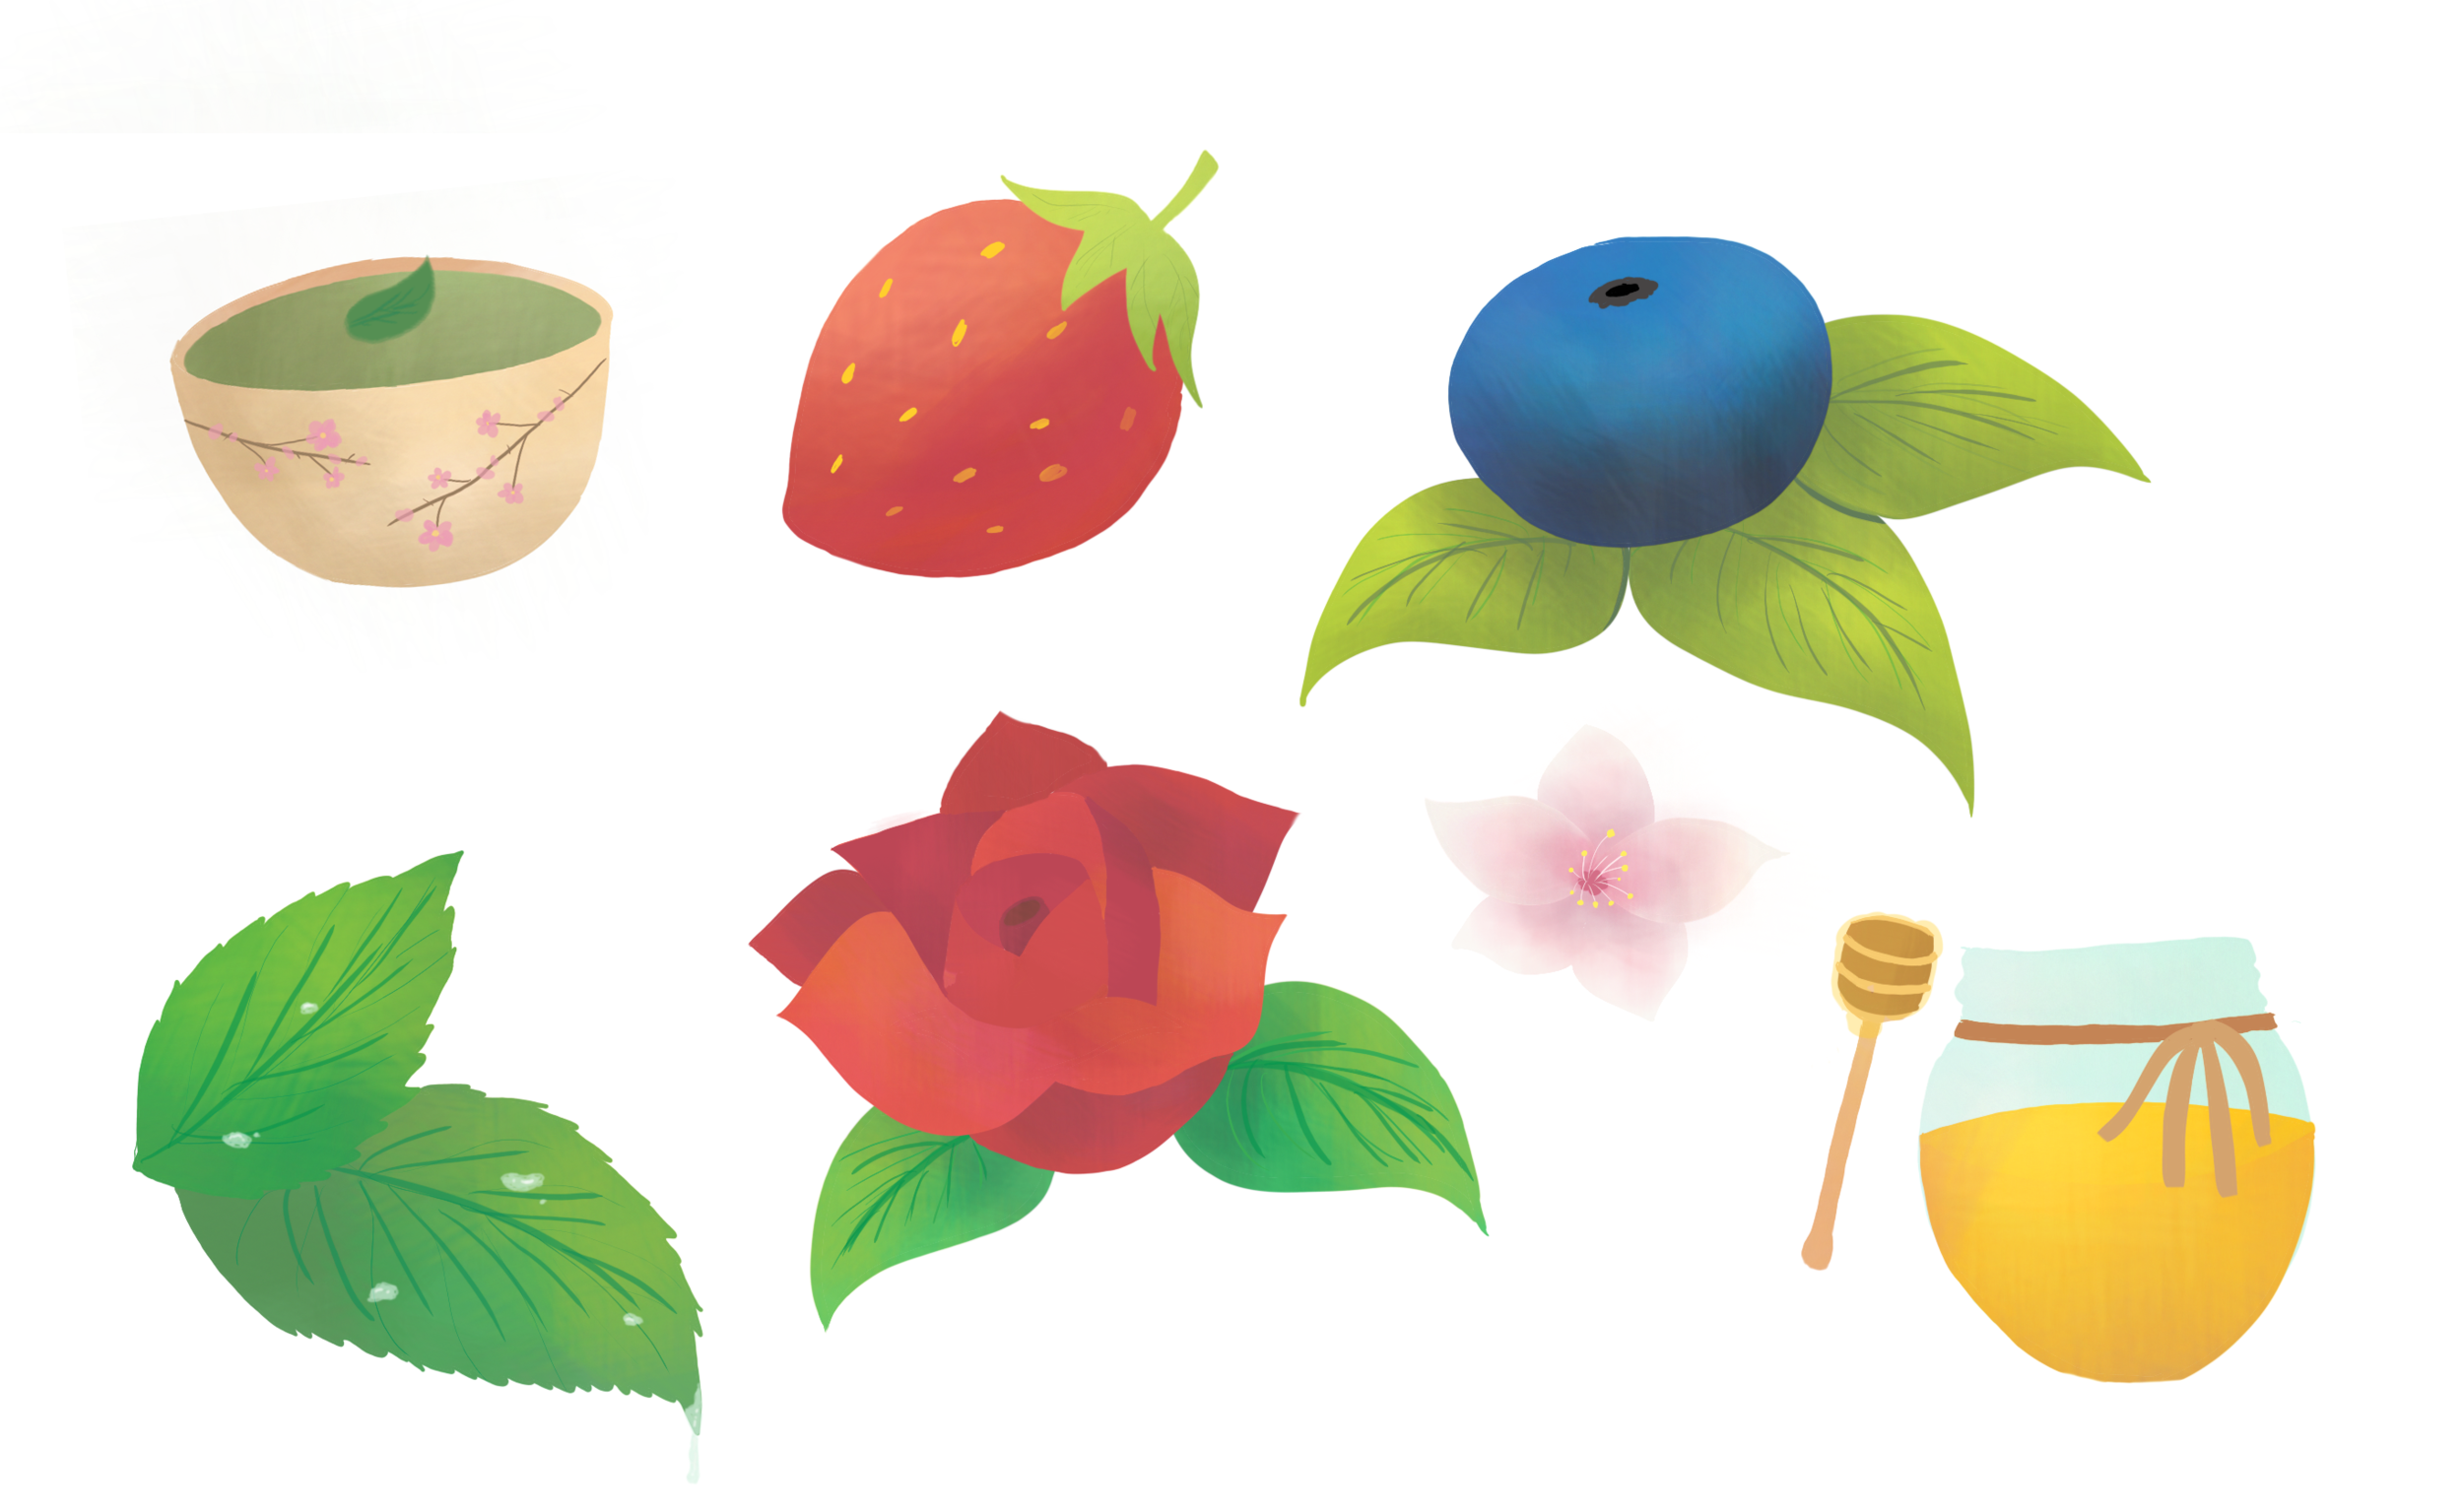 Illustrations for tea packaging for client